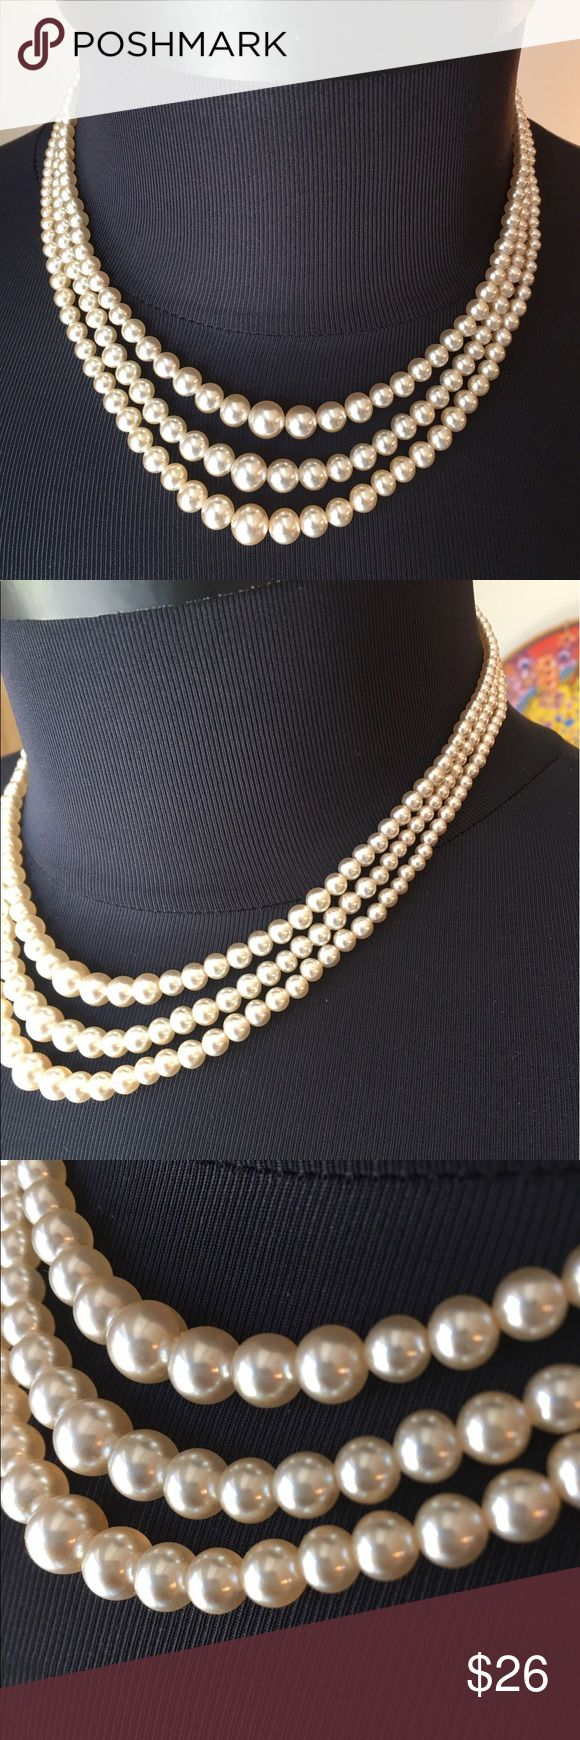 ⭐️NEIMAN MARCUS VINTAGE 1950's PEARL STRANDS 💯 NEIMAN MARCUS EARLY 1950's TRIPLE STRAND OF FAIX PEARLS. STUNNING AND STYLISH ALWAYS ON TREND. SO BEAUTIFUL. PURCHASED AT THE DALLAS NEIMAN  MARCUS IN THE EARLY 1950's. THE LENGTH IS 16.5 INCHES. FABRICATED IN JAPAN Neiman Marcus Jewelry Necklaces